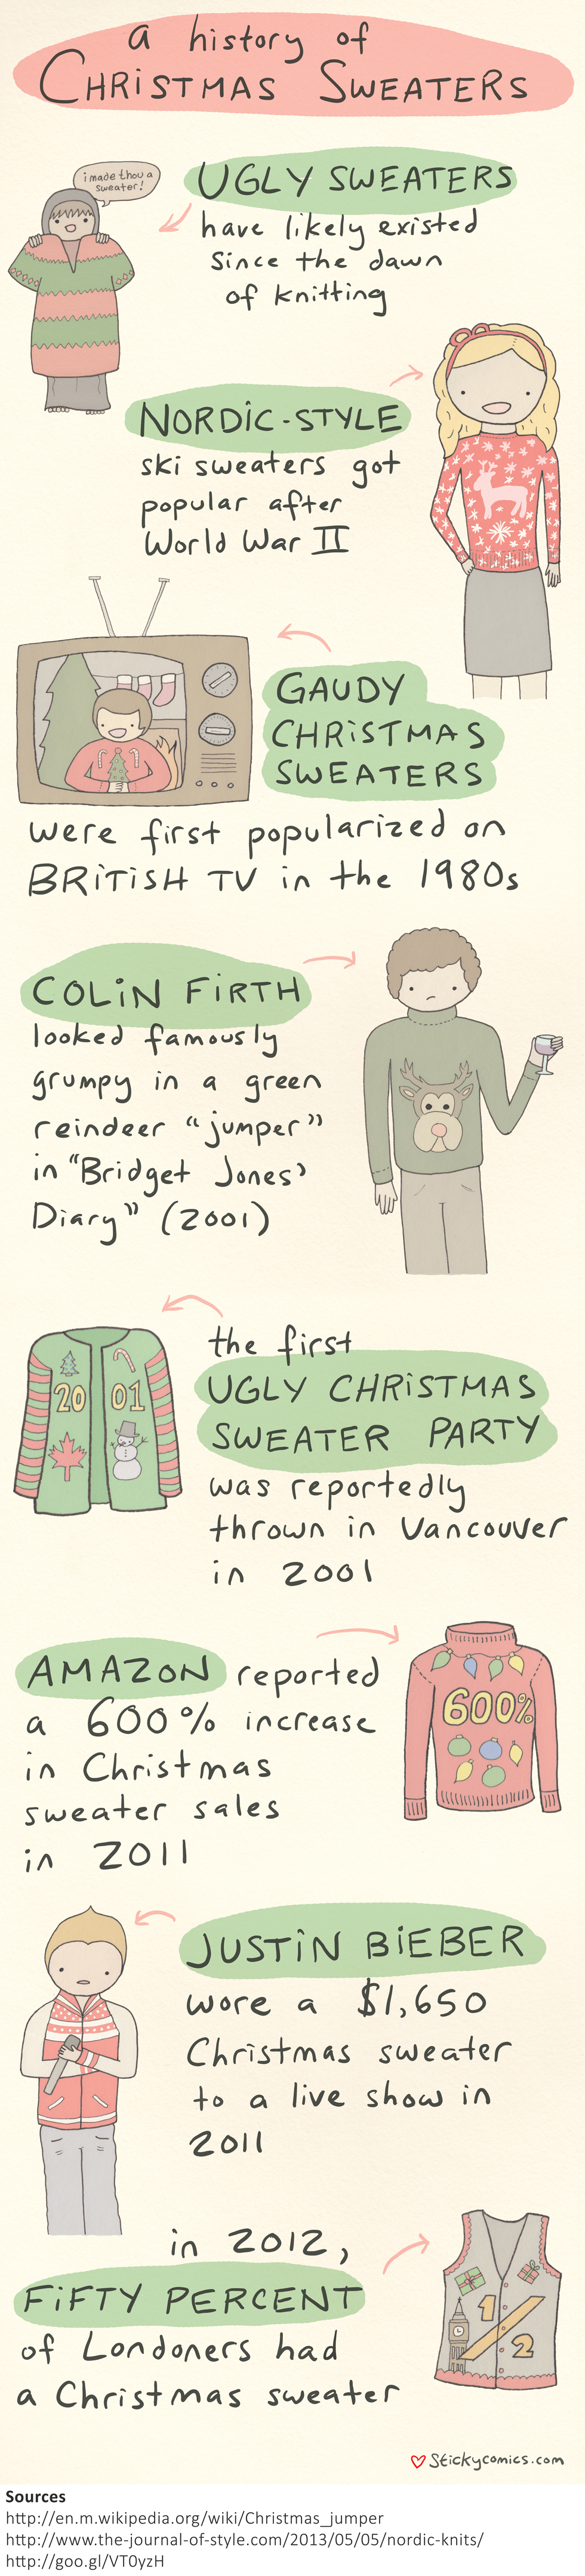 HIstory of Ugly Christmas Sweaters